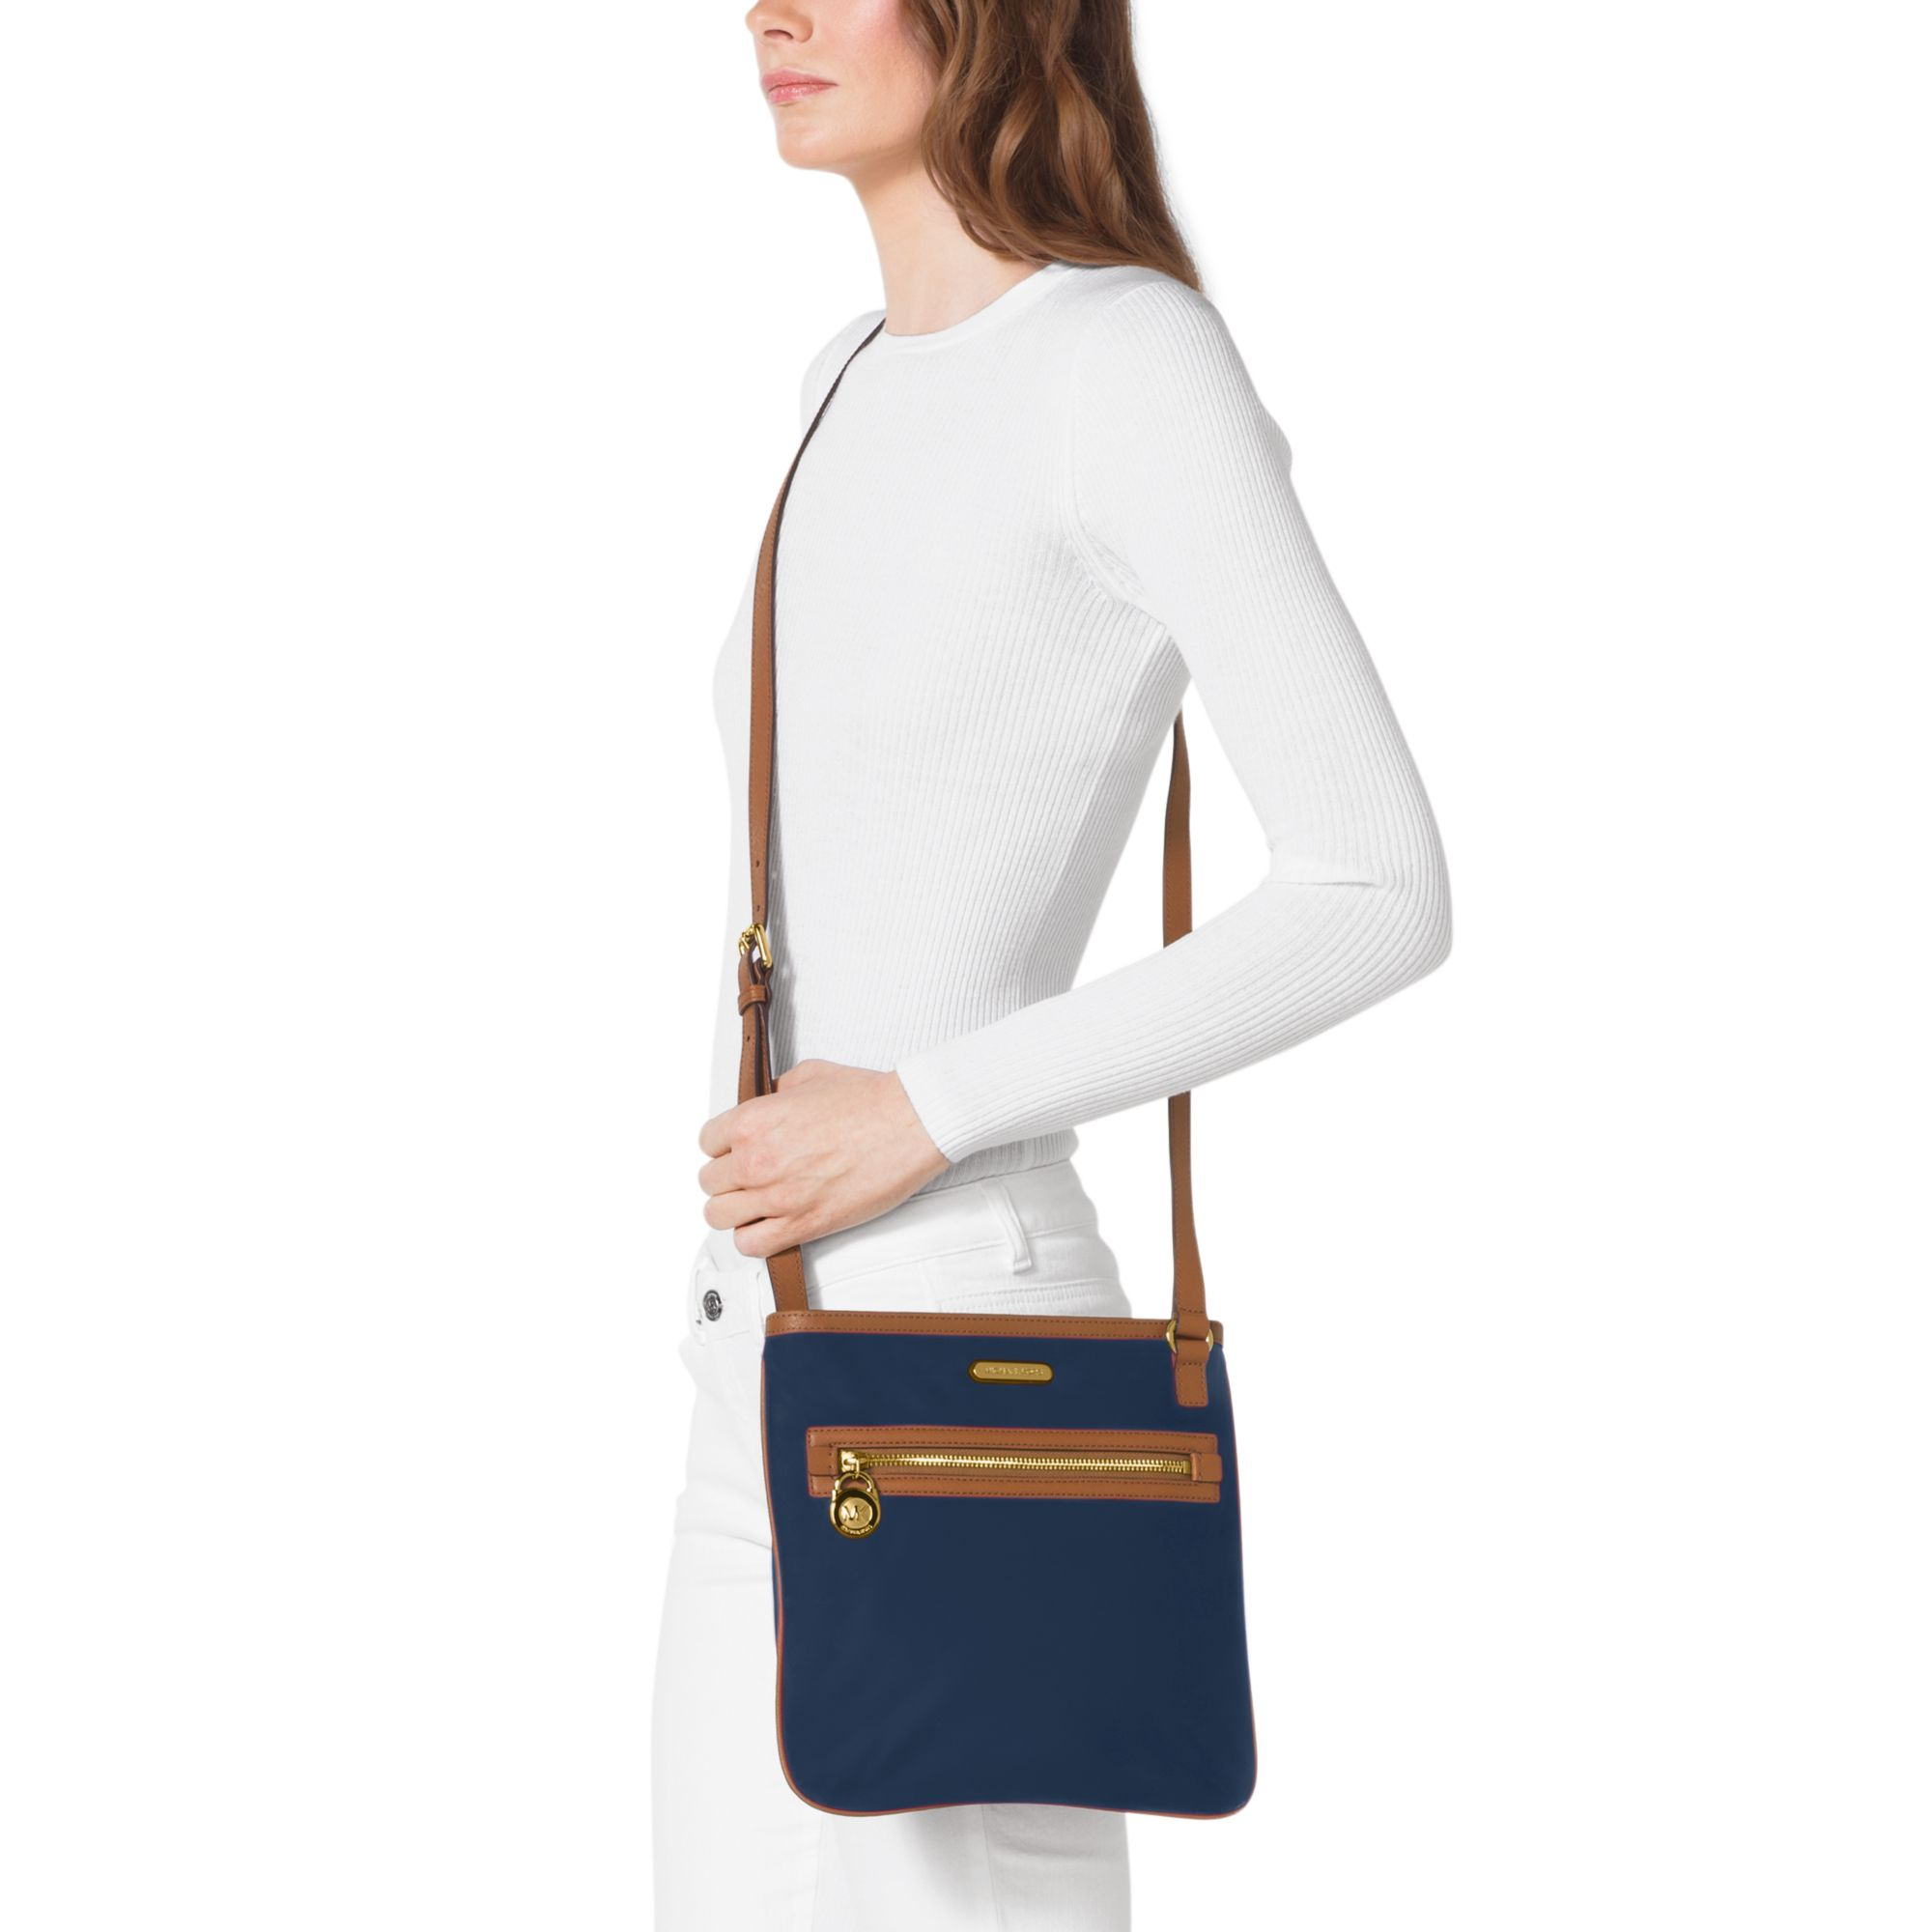 7b7128d0250d6c Michael Kors Kempton Leather-Trimmed Nylon Large Crossbody in Blue ...